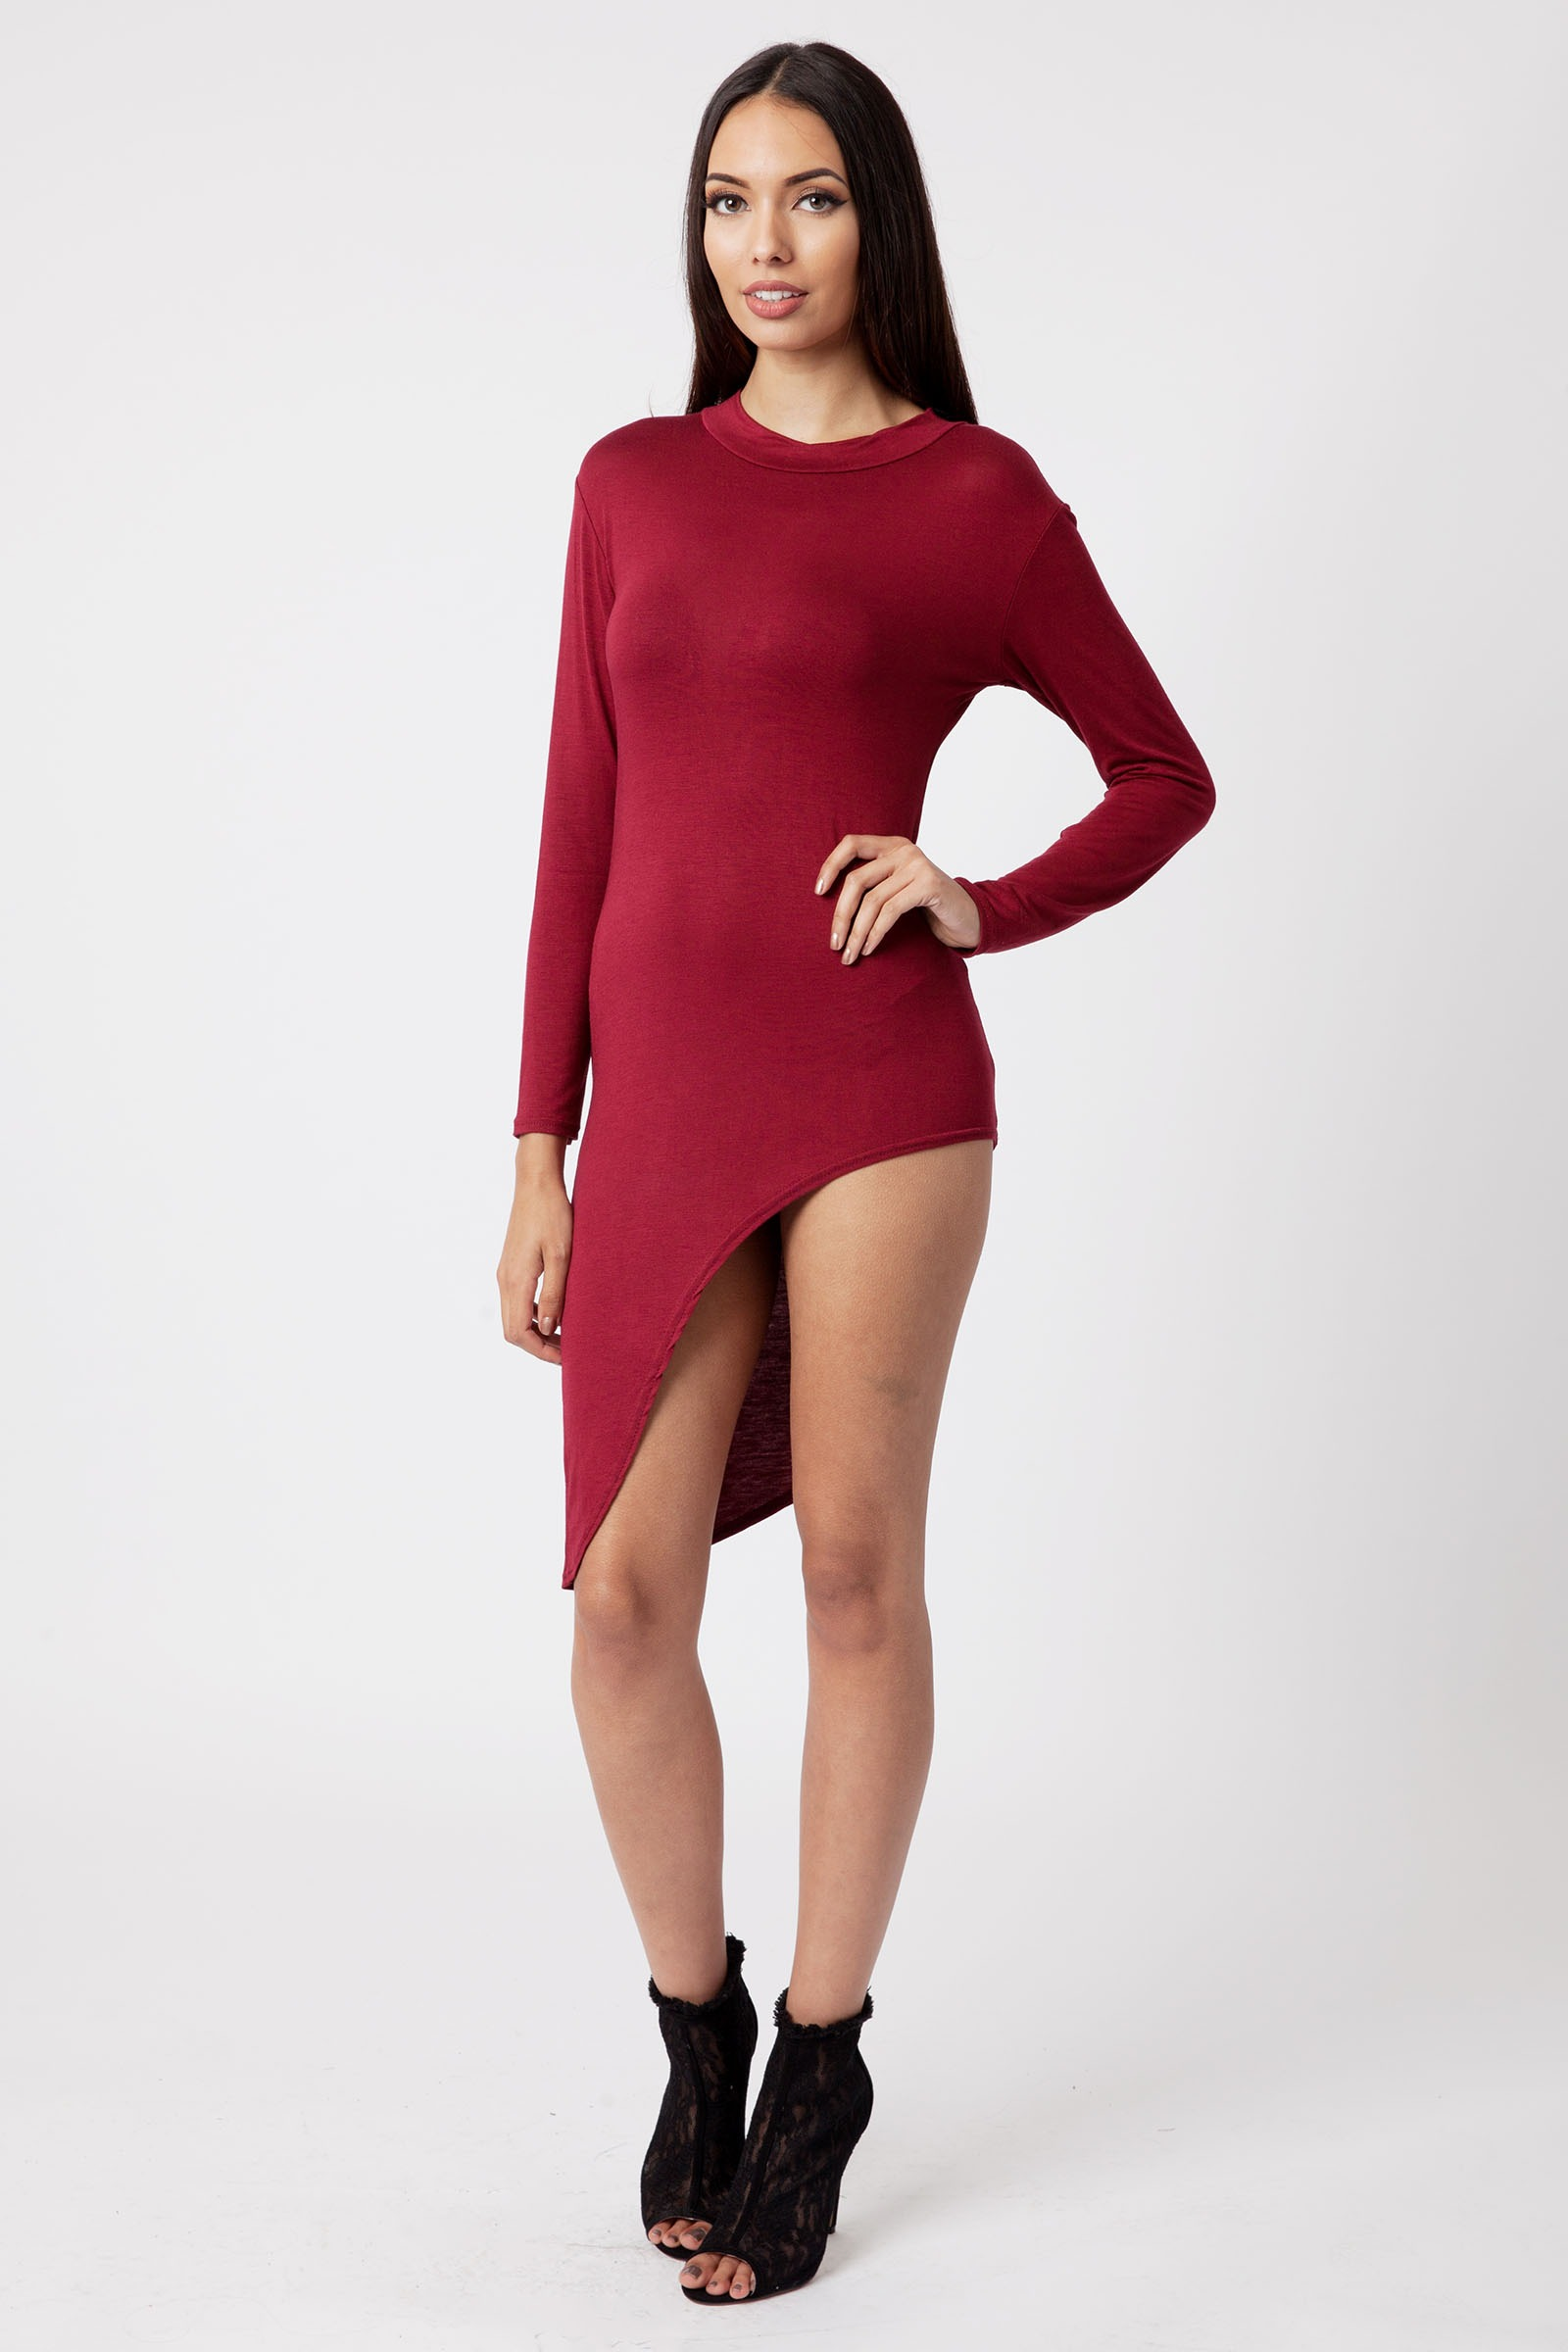 Black Bodycon Wine Shoes Outfit